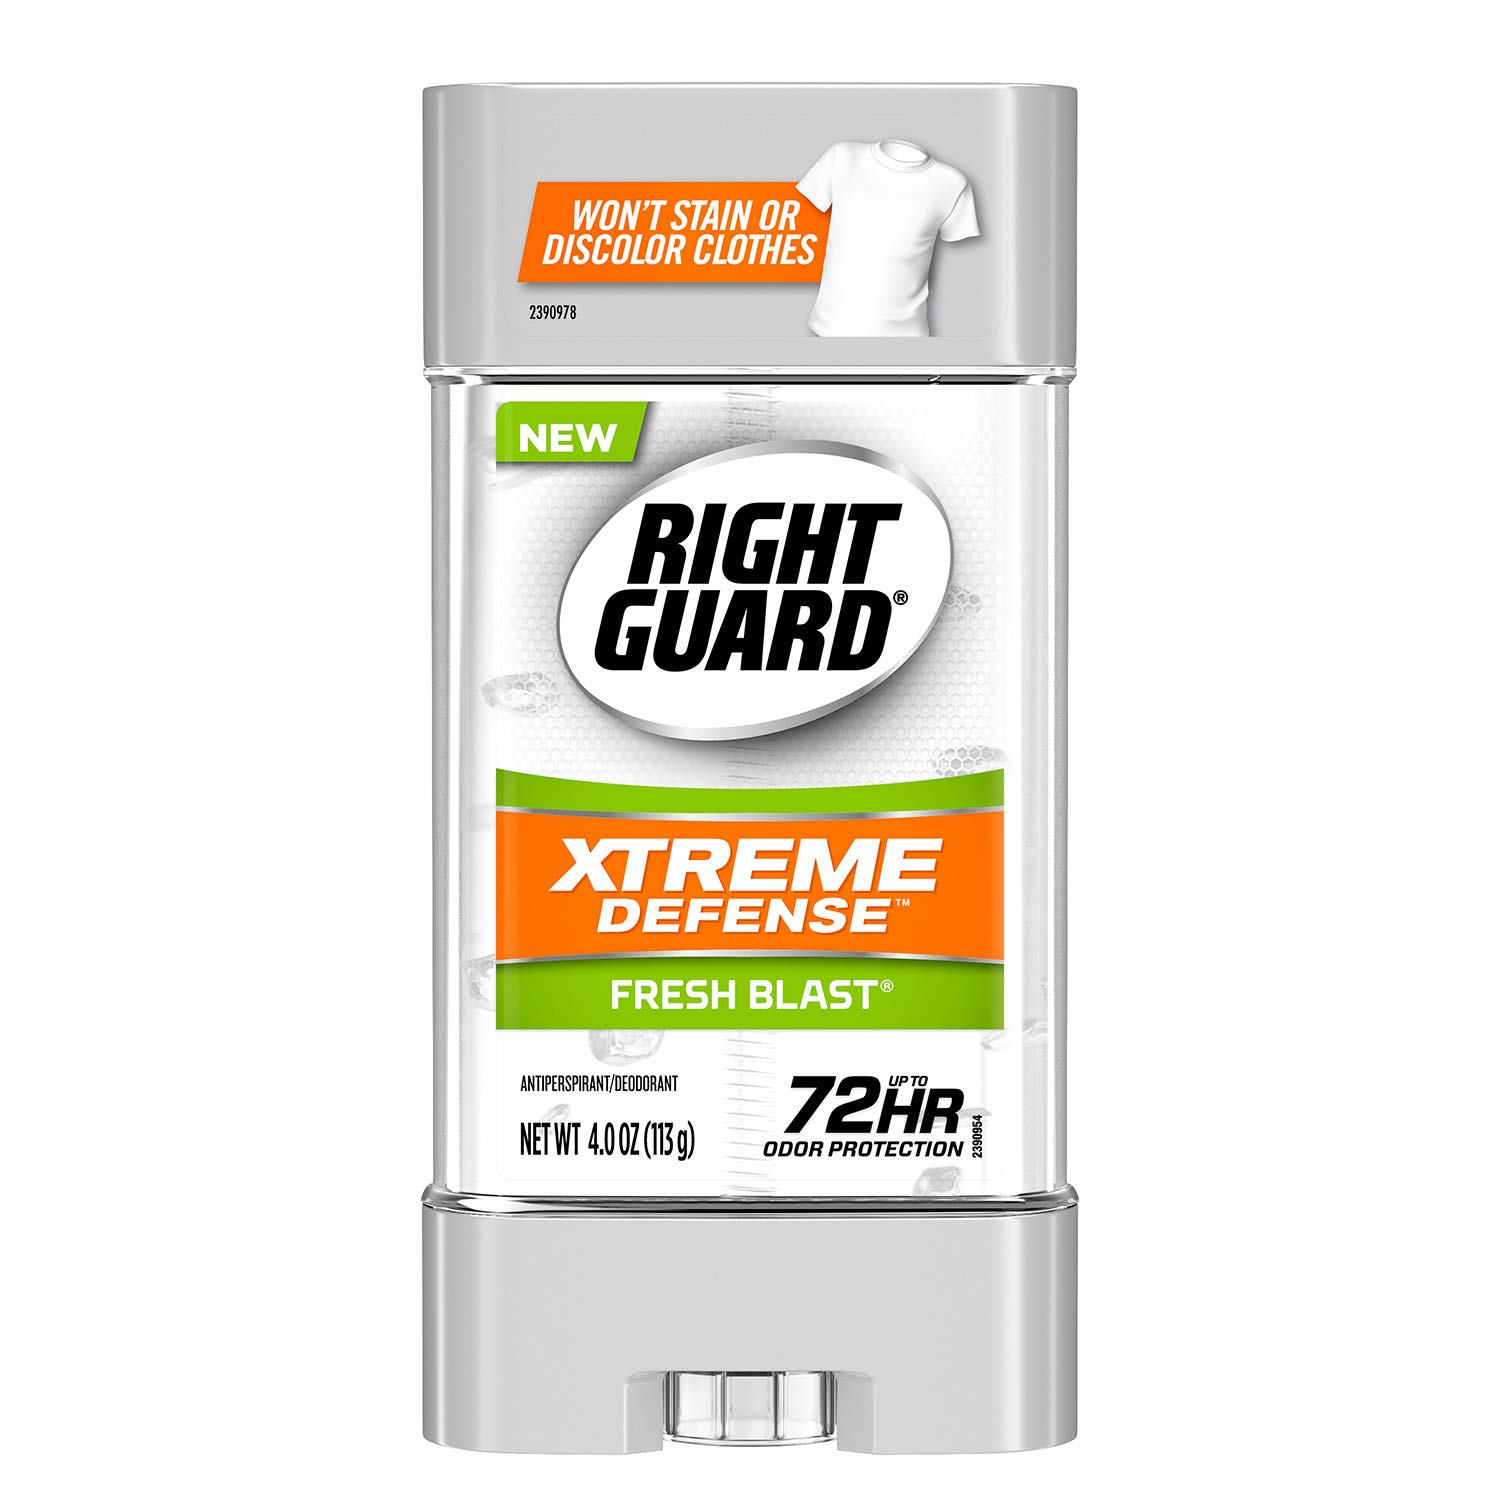 Right Guard Xtreme Defense 5 Antiperspirant Deodorant Gel, Fresh Blast, 4 Ounces (Pack of 6)